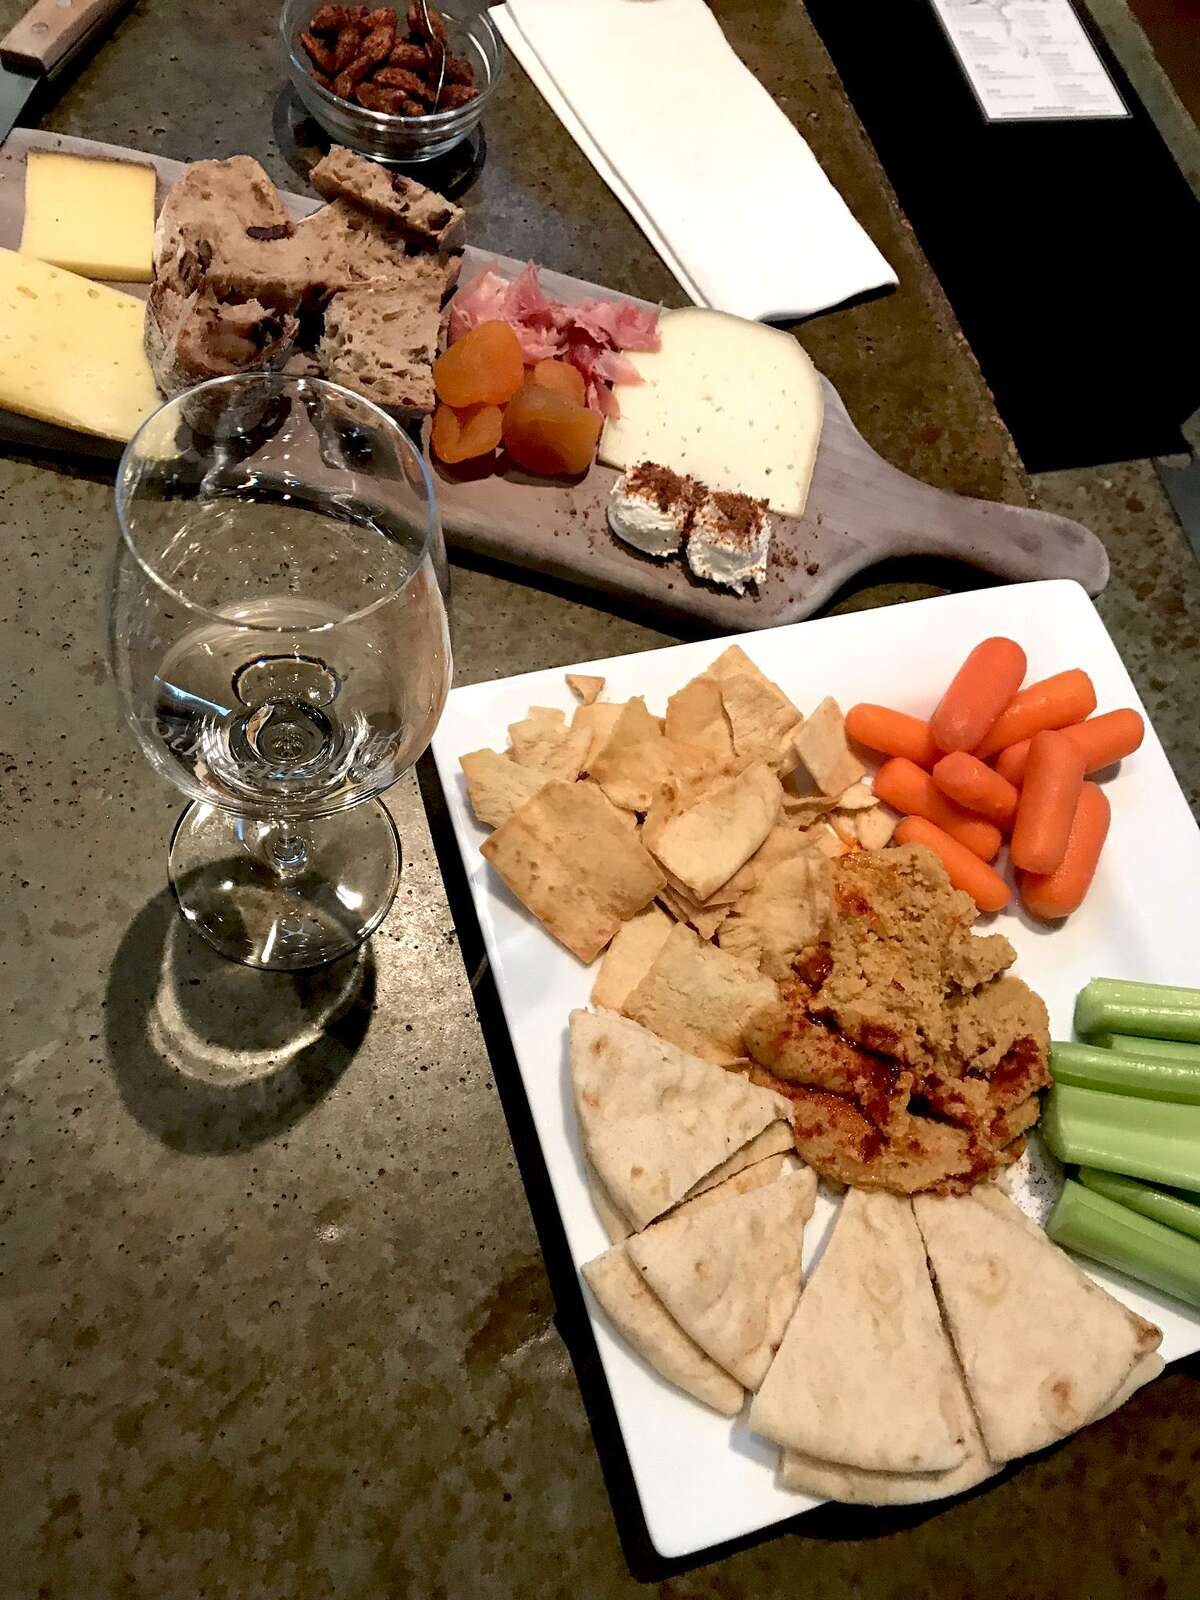 William Chris Vineyards has a small selection of bites, including a cheese plate and a homemade hummus.